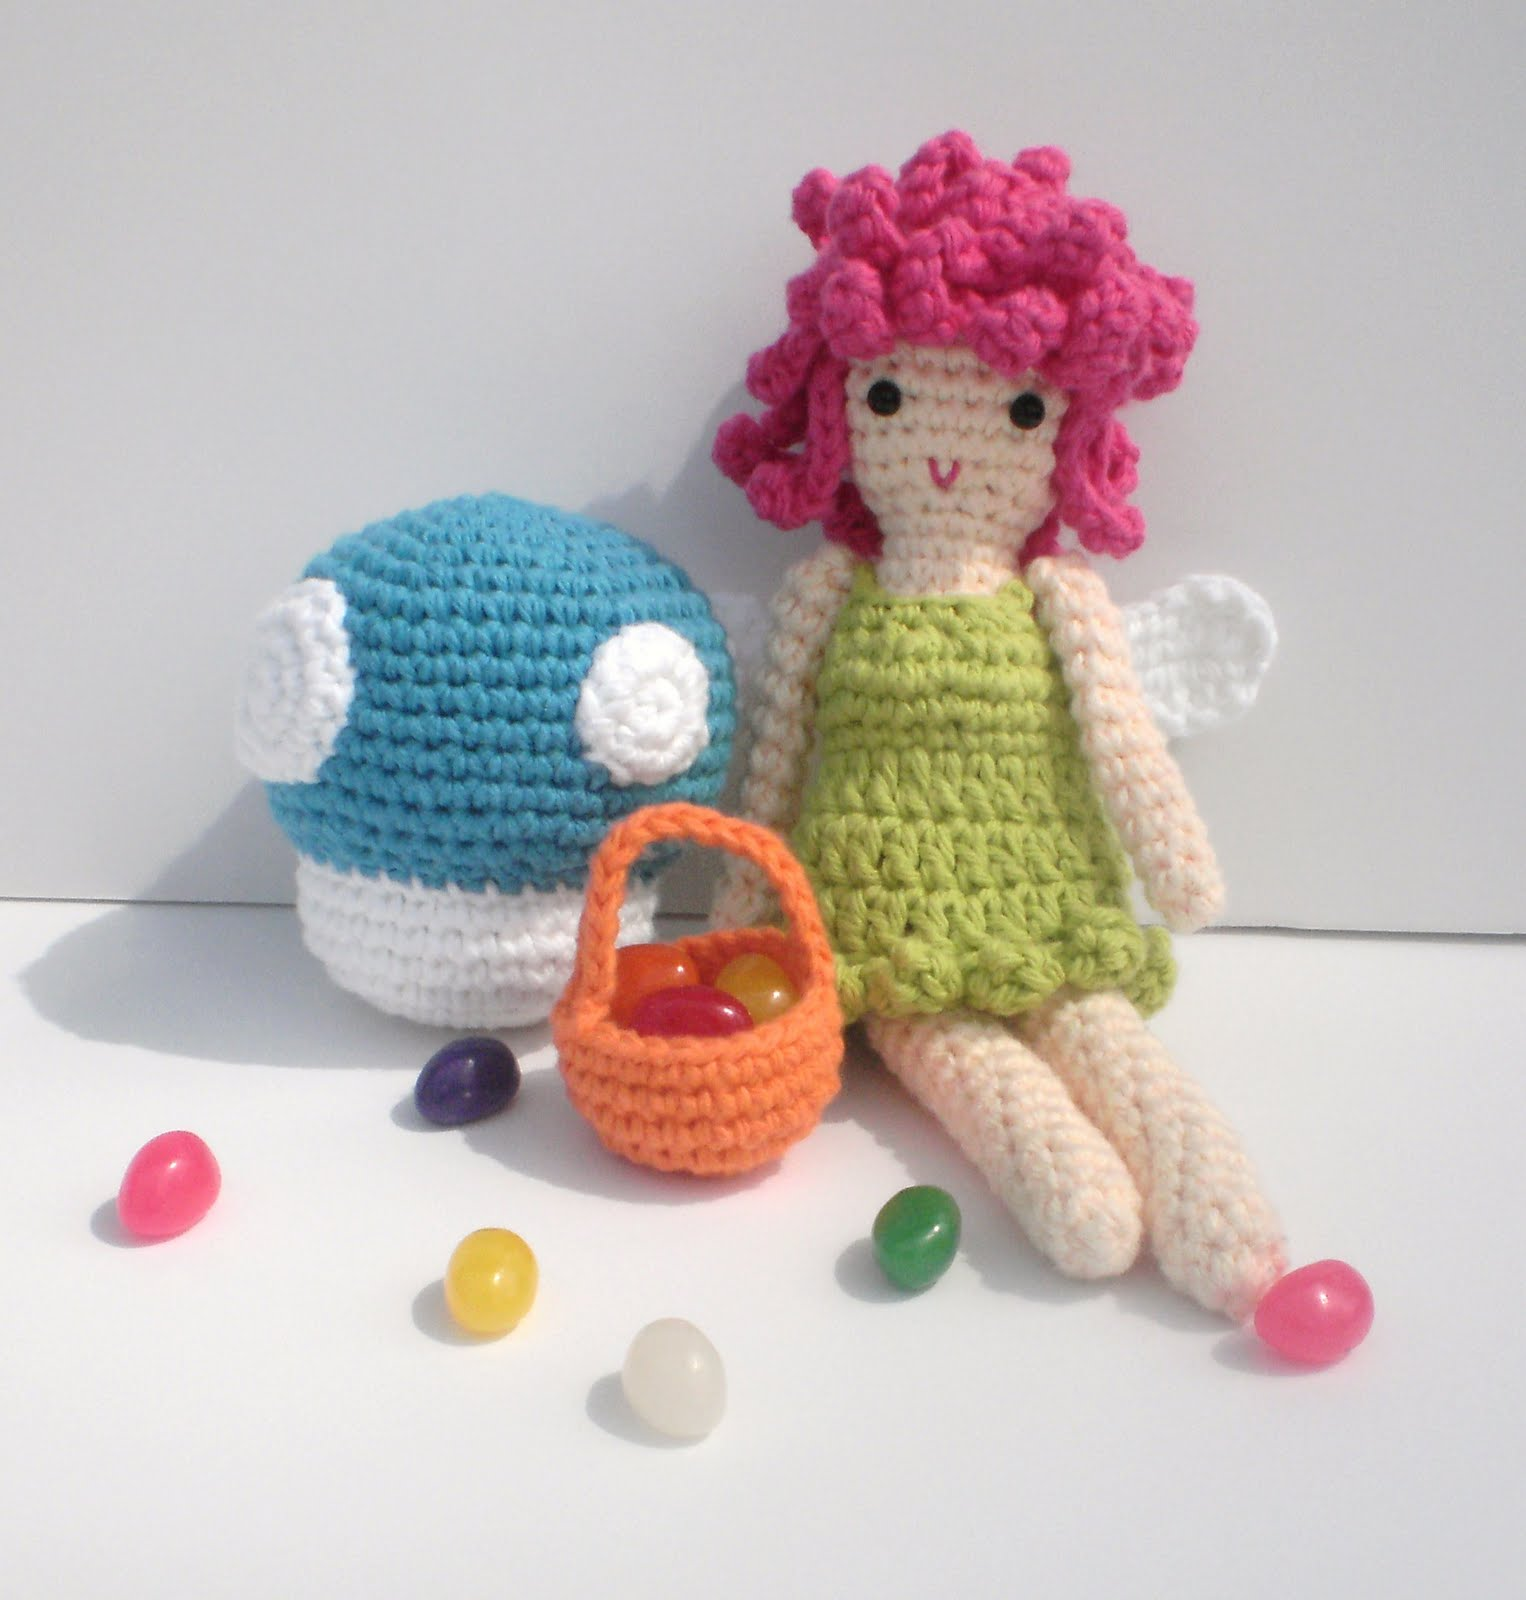 Original Crochet Amigurumi Flowers : The Blue Crab Stitches At Midnight: Flower Fairy ...